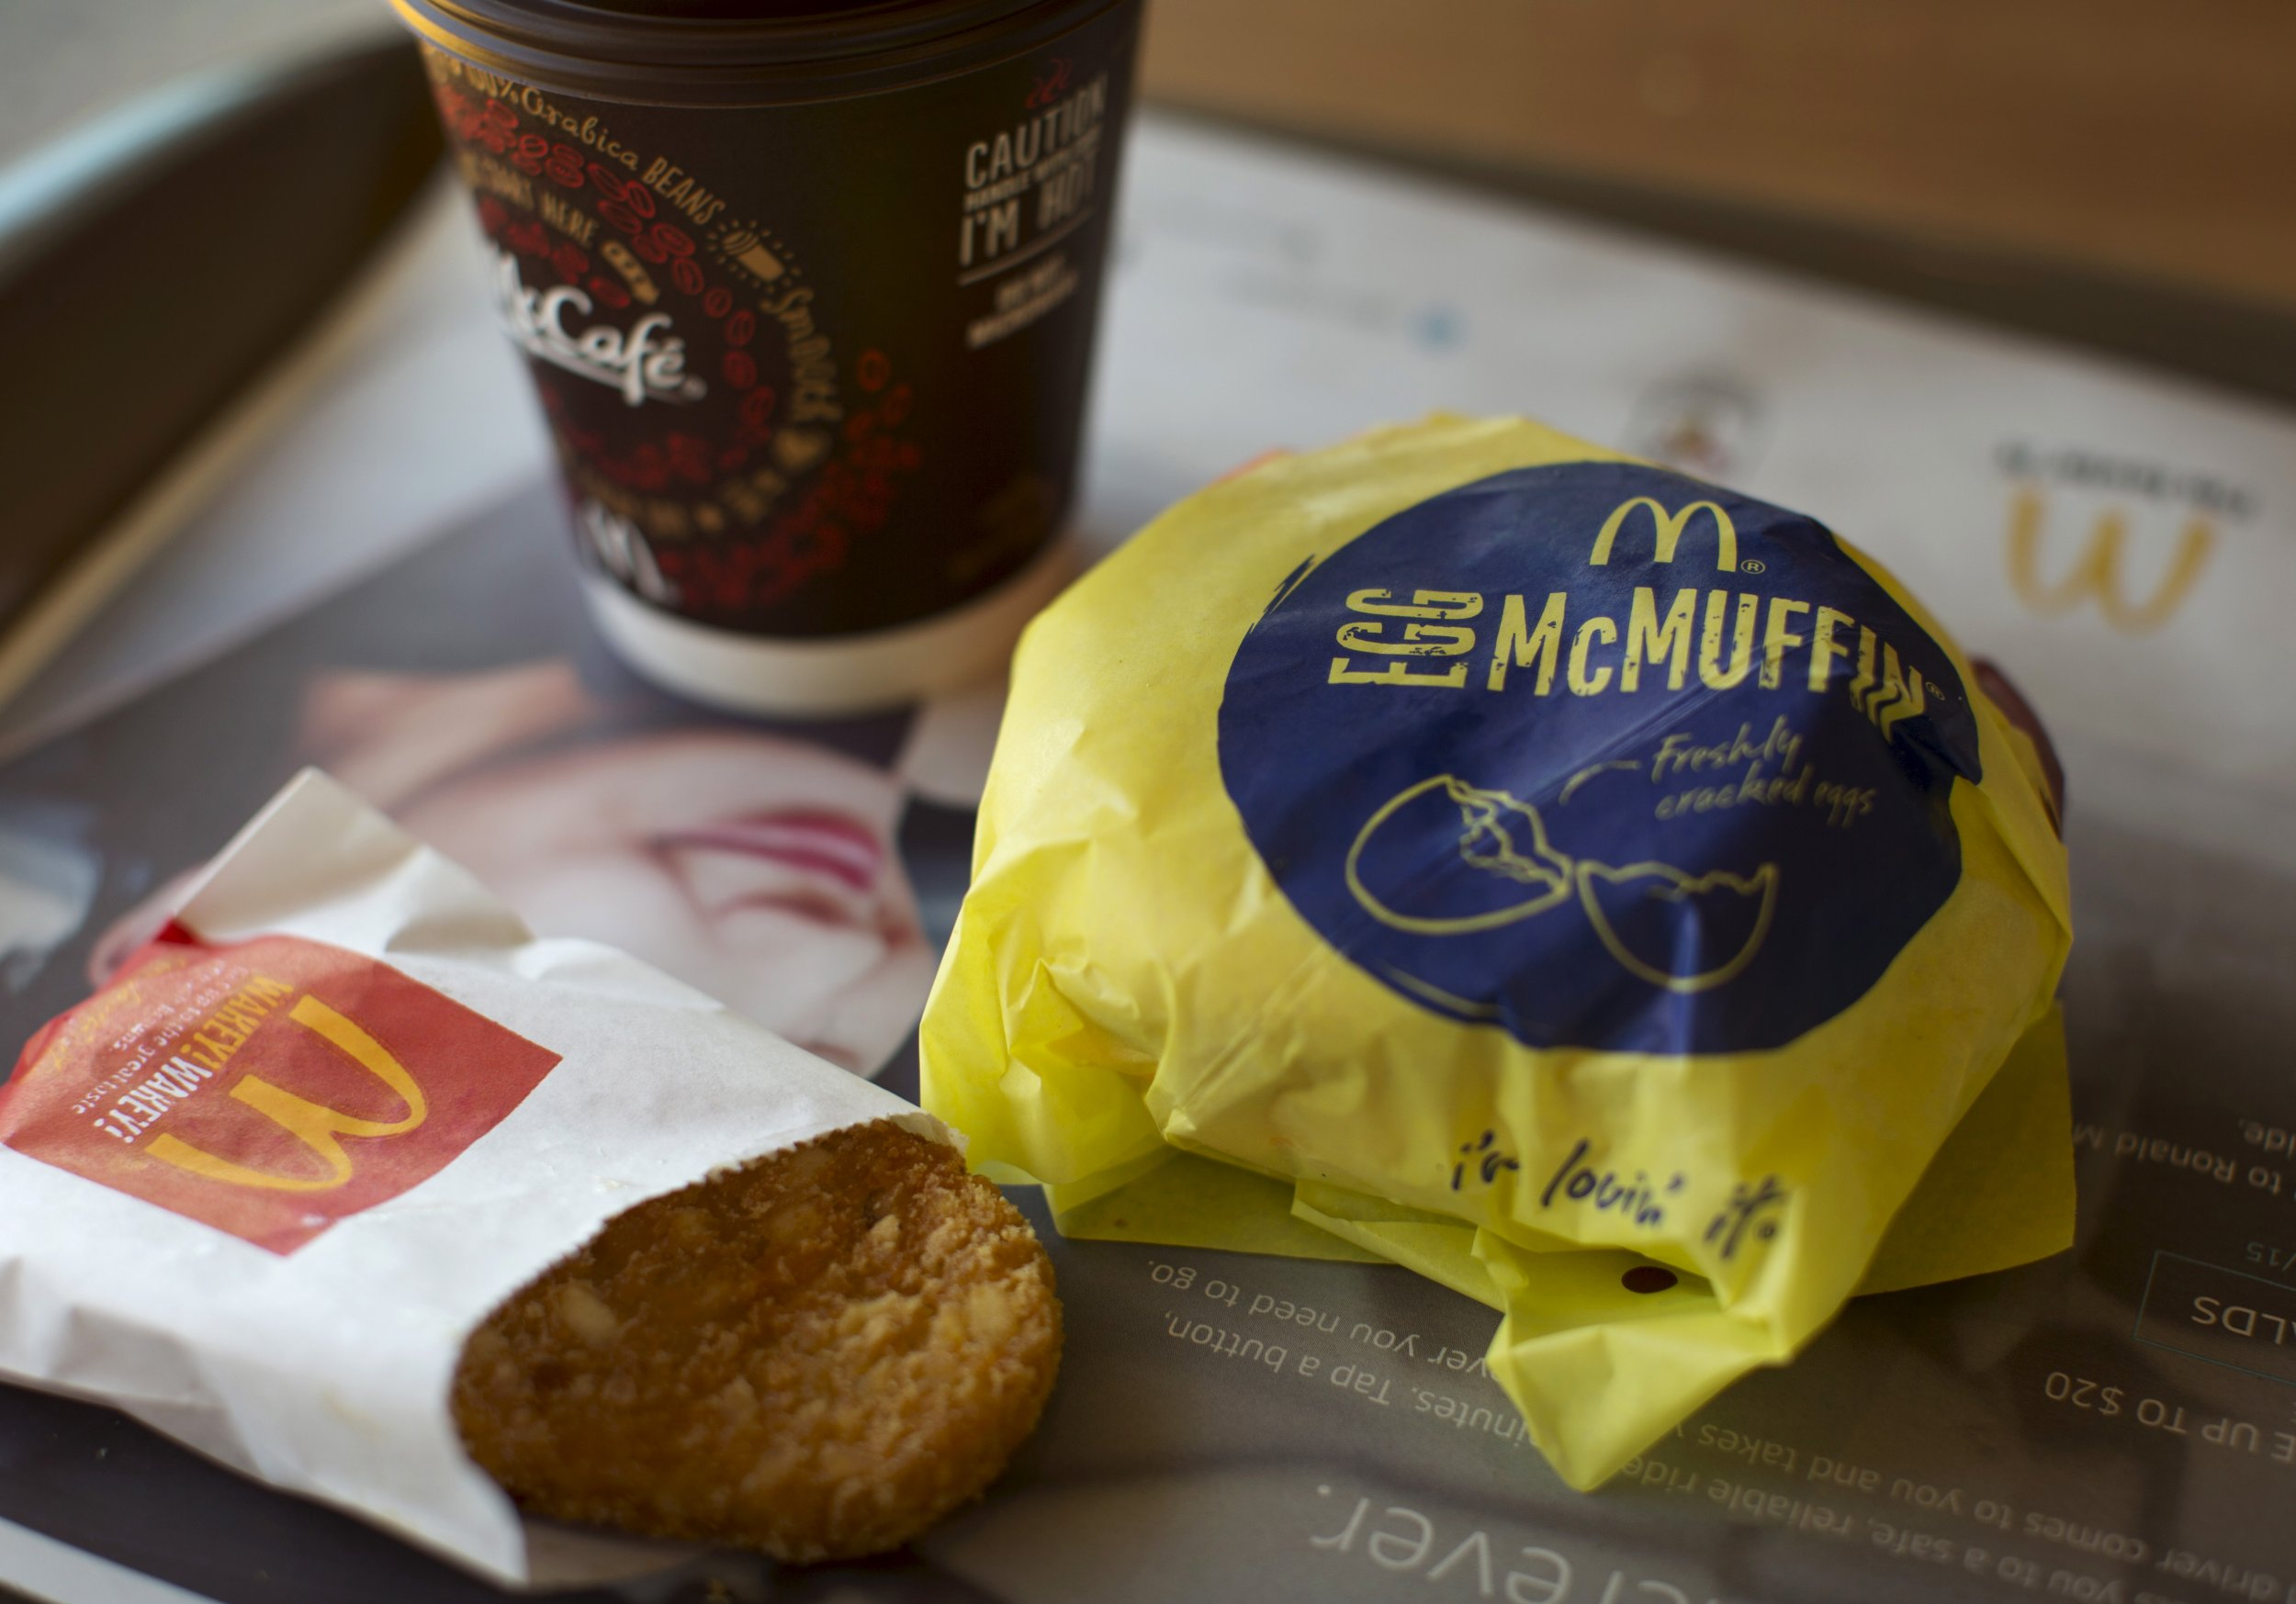 An Egg McMuffin